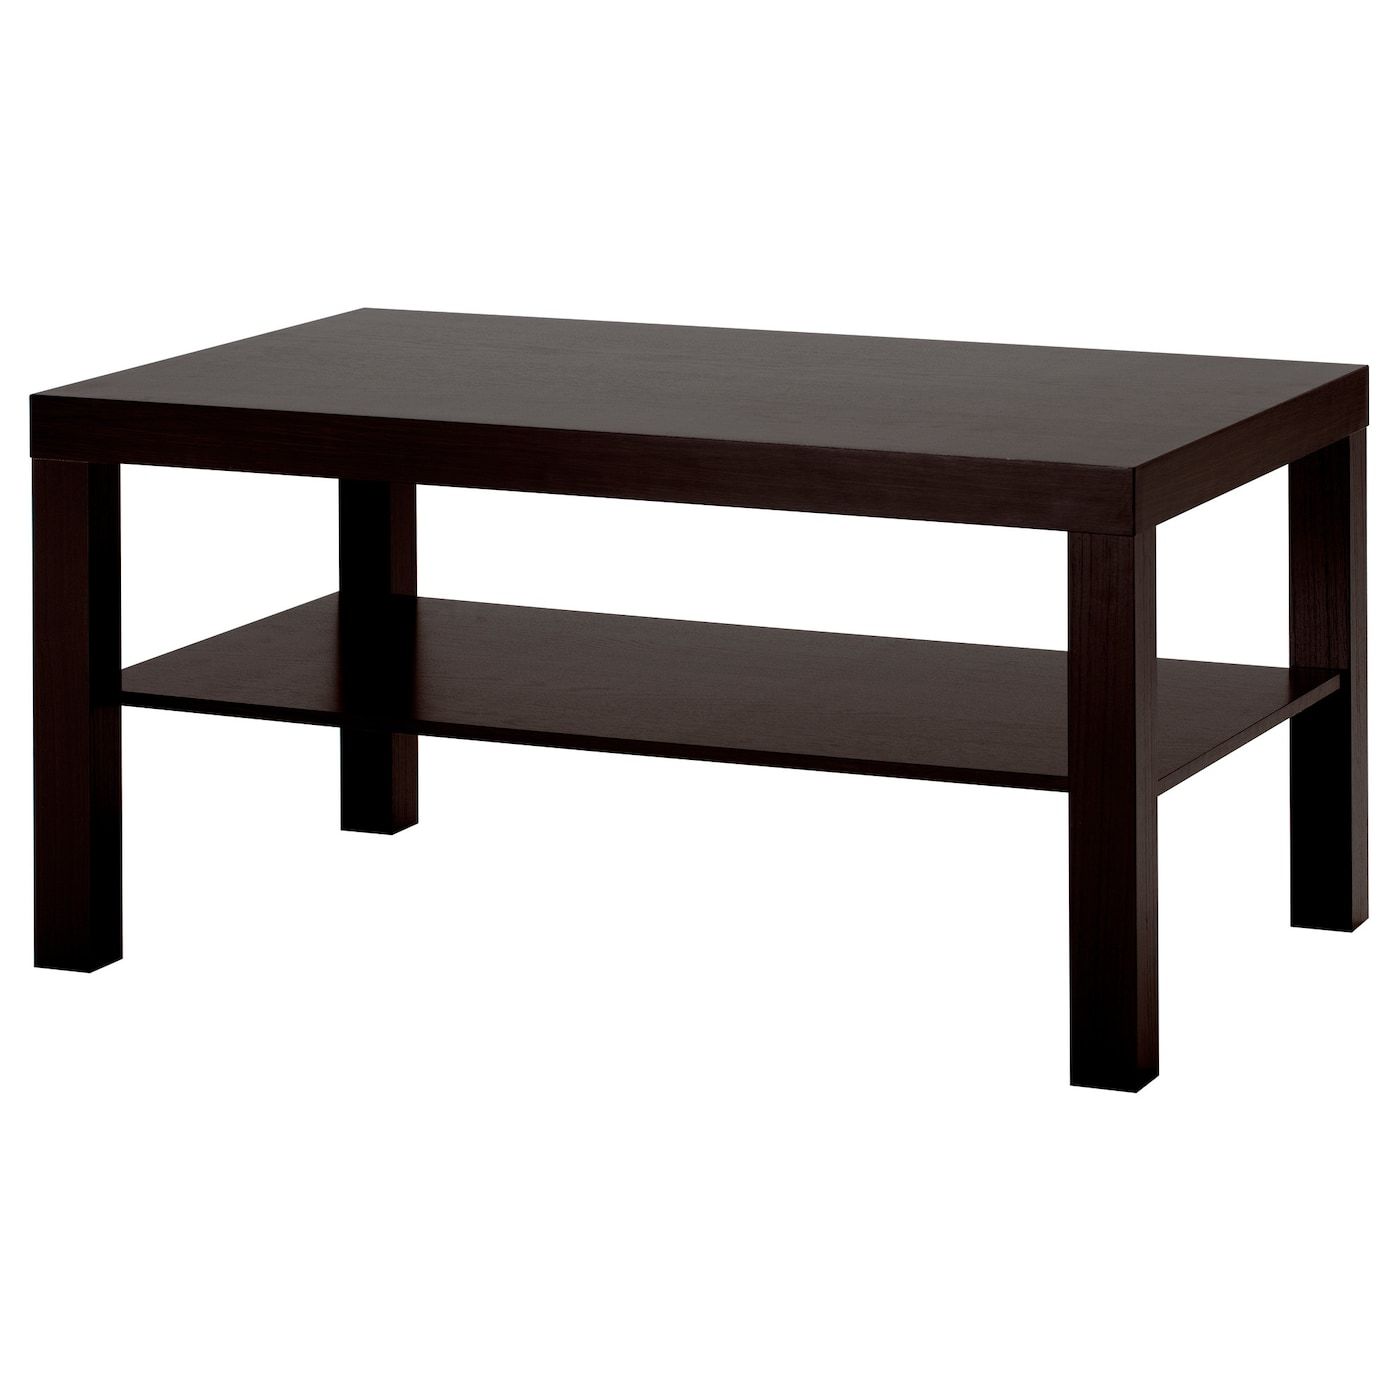 Lack coffee table black brown 90x55 cm ikea Ikea coffee tables and end tables